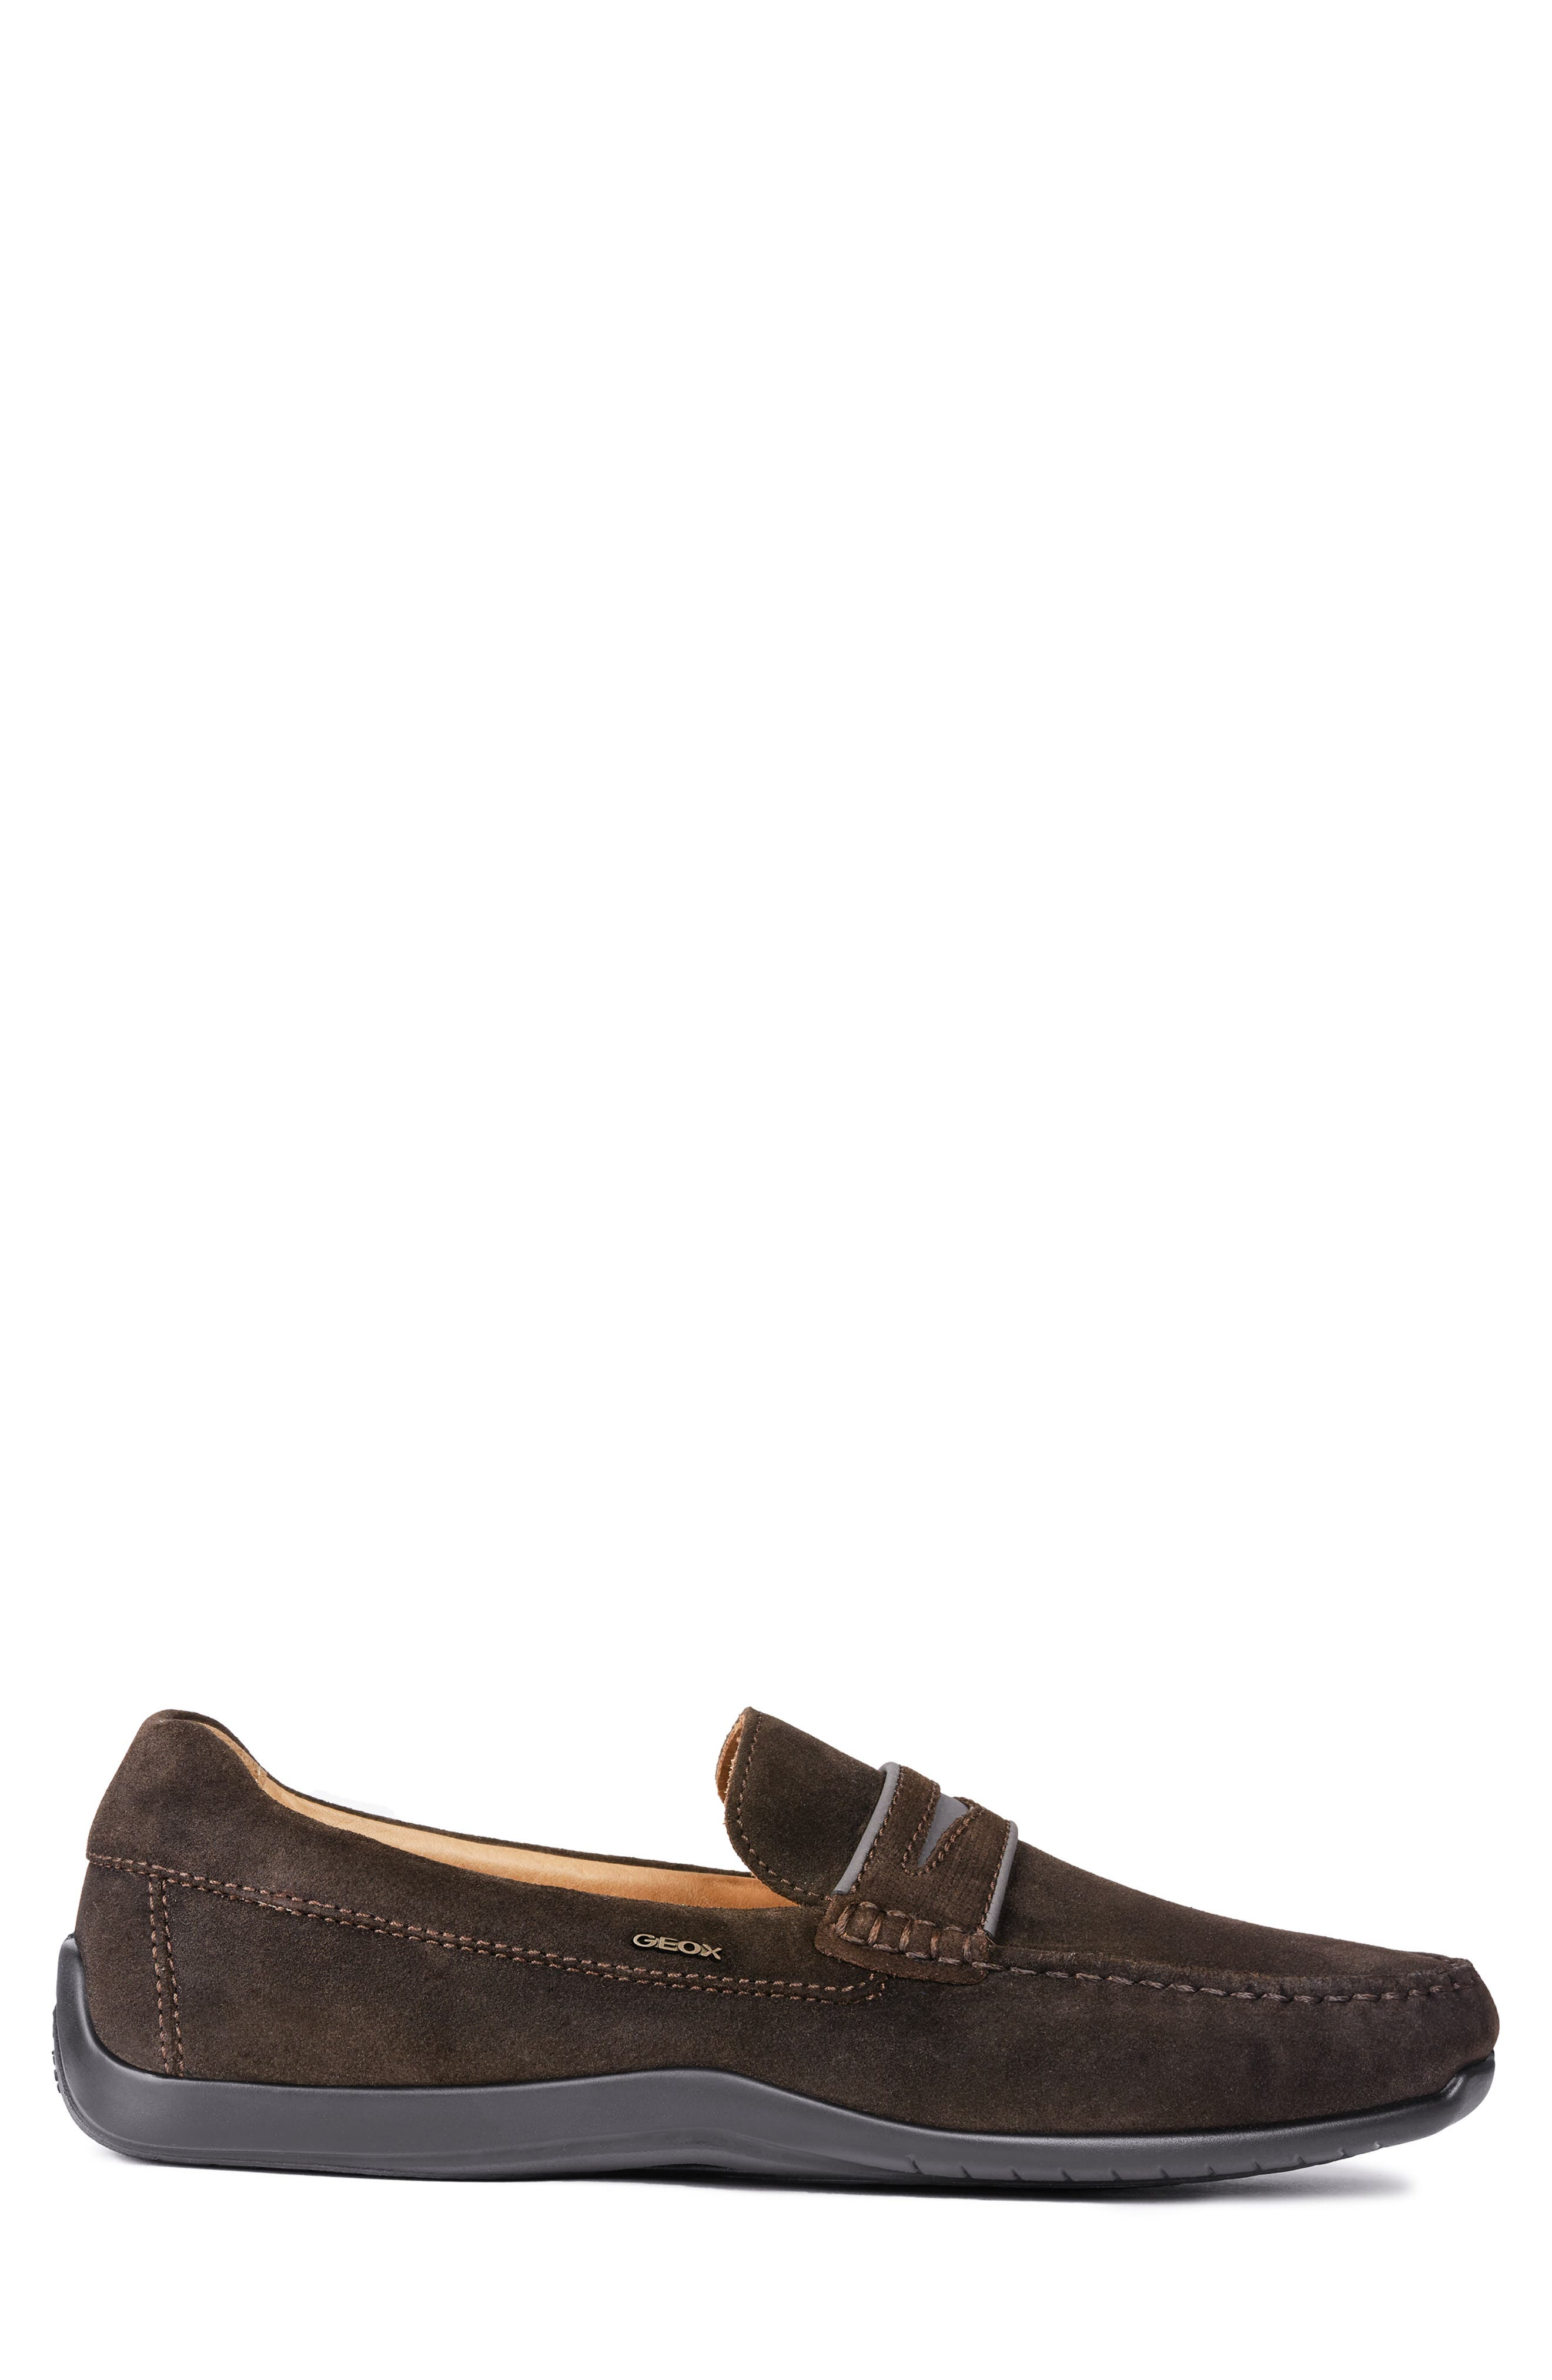 GEOX, Xense Mox 15 Penny Loafer, Alternate thumbnail 3, color, 248